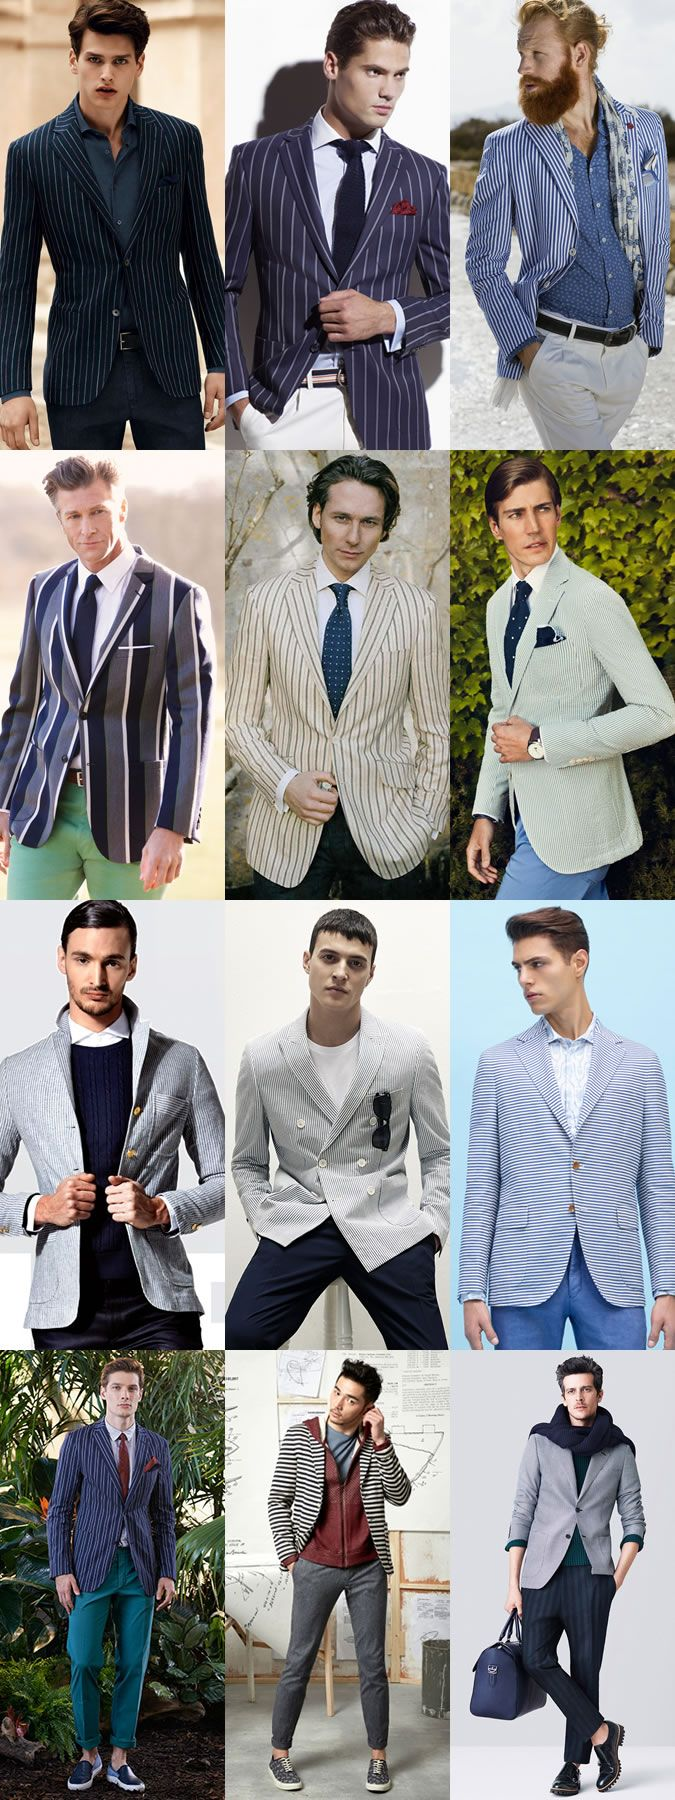 Men's Striped Separates - Trousers and Blazers - Spring/Summer Outfit Inspiration Lookbook